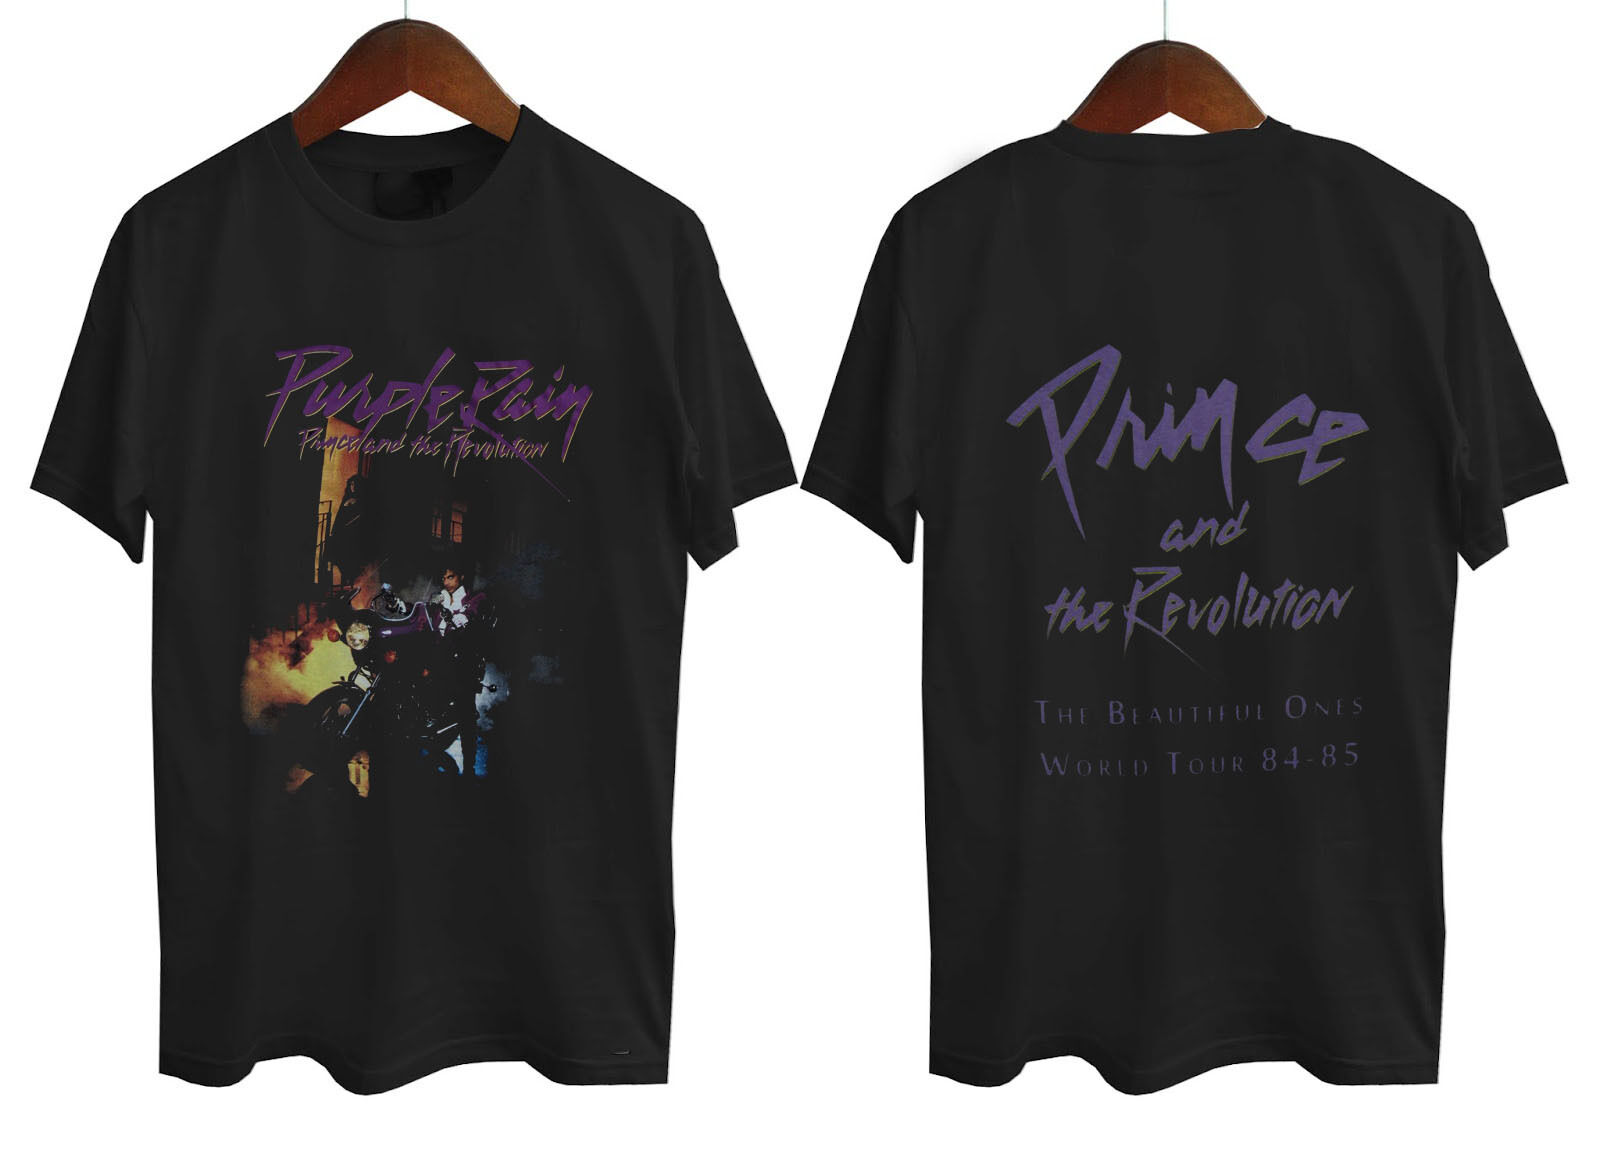 Prince - Purple Rain Tour 84-85 N T-shirt  Short Sleeve T Shirt Cotton Top Tee Cotton Cool Design 3D Tee Shirts Plus Size